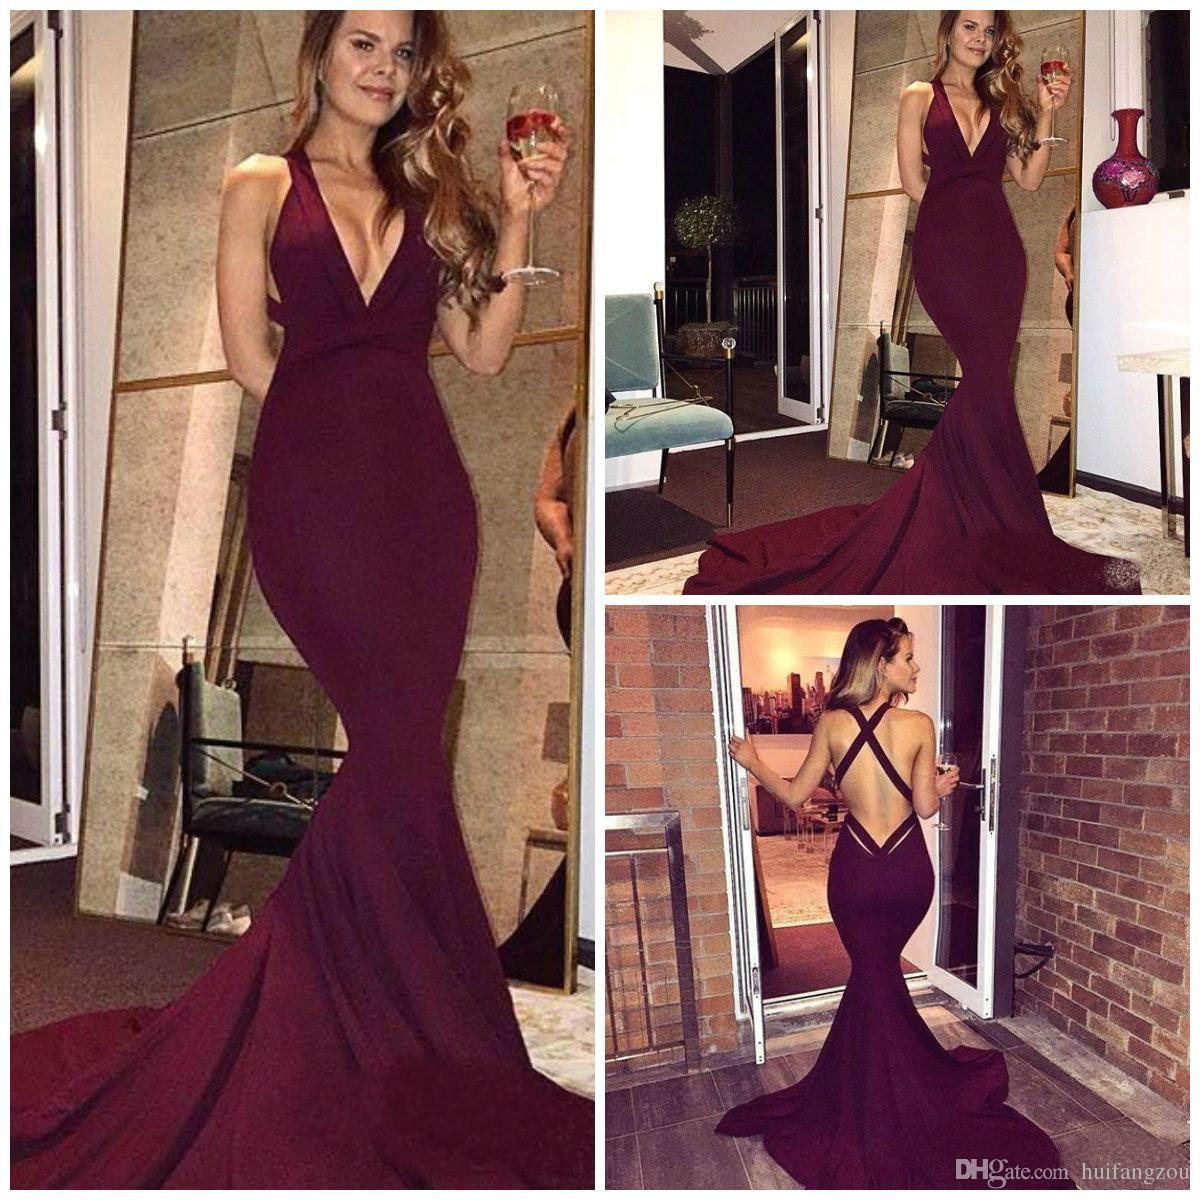 680064c5fc6 Wine Red Mermaid Prom Dresses Sexy Deep V Neck Sweep Train Evening Gowns  Cross Straps Formal Party Dresses Halter Neck Evening Dress Lace Evening  Dresses Uk ...